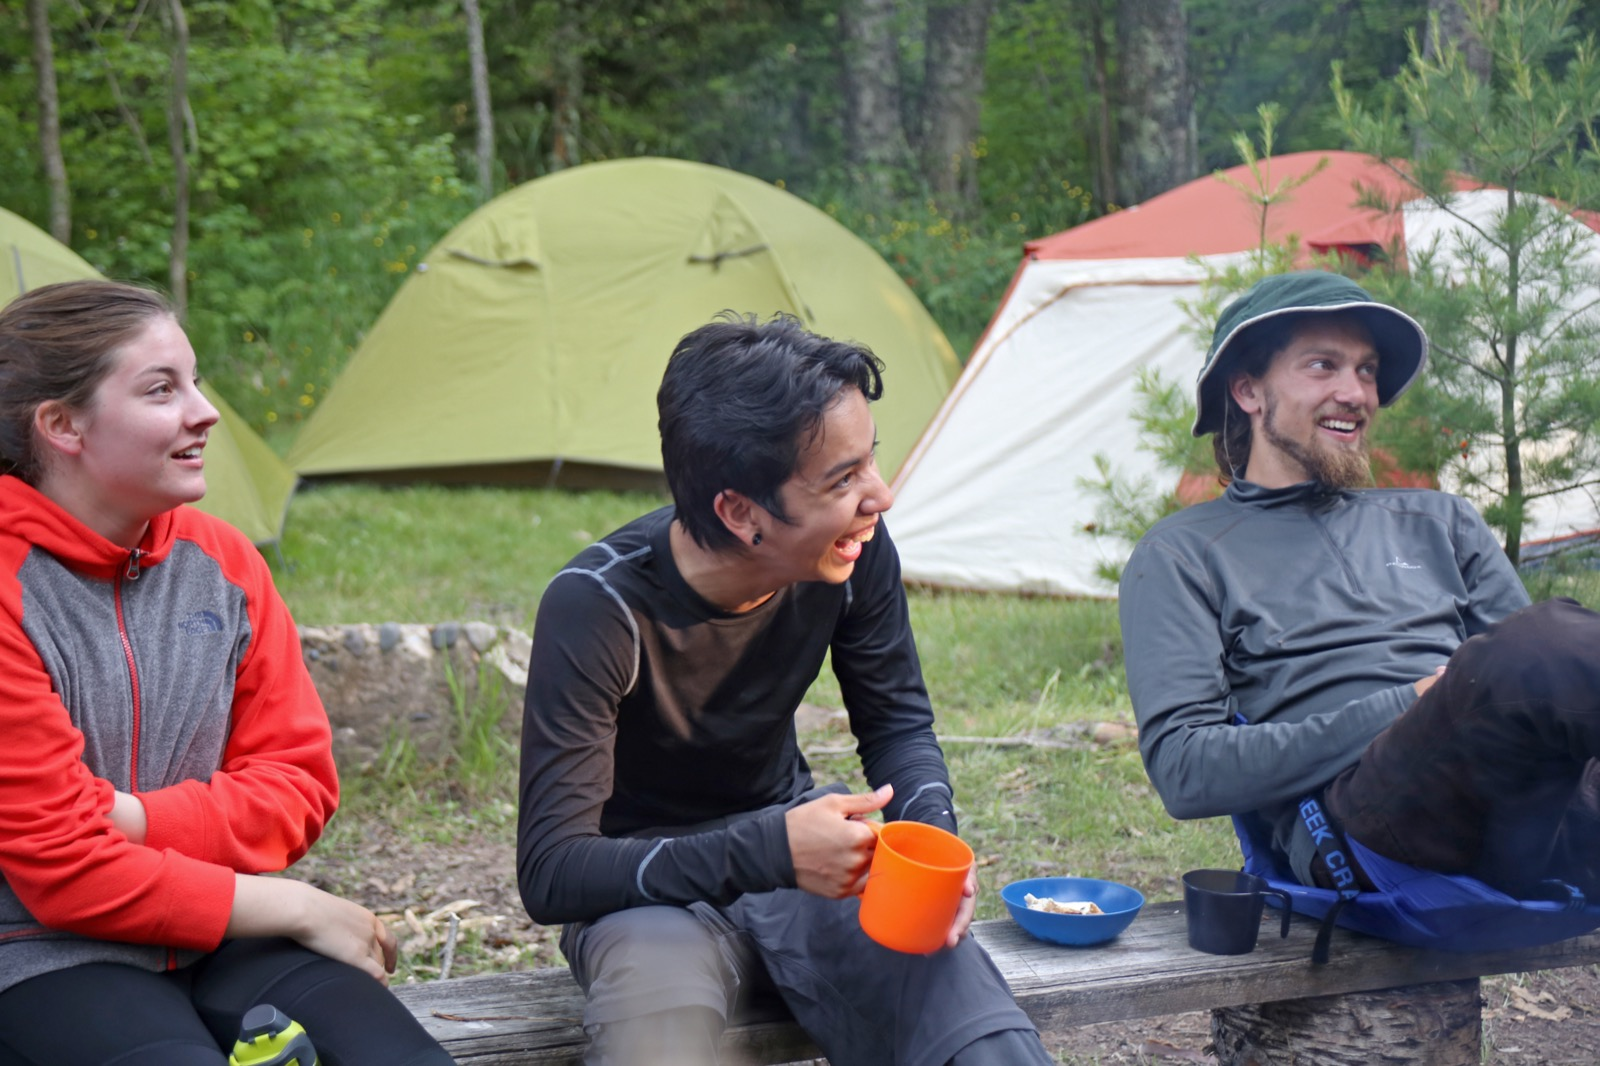 Three young people sitting on a bench at a campsite with tents in the background.